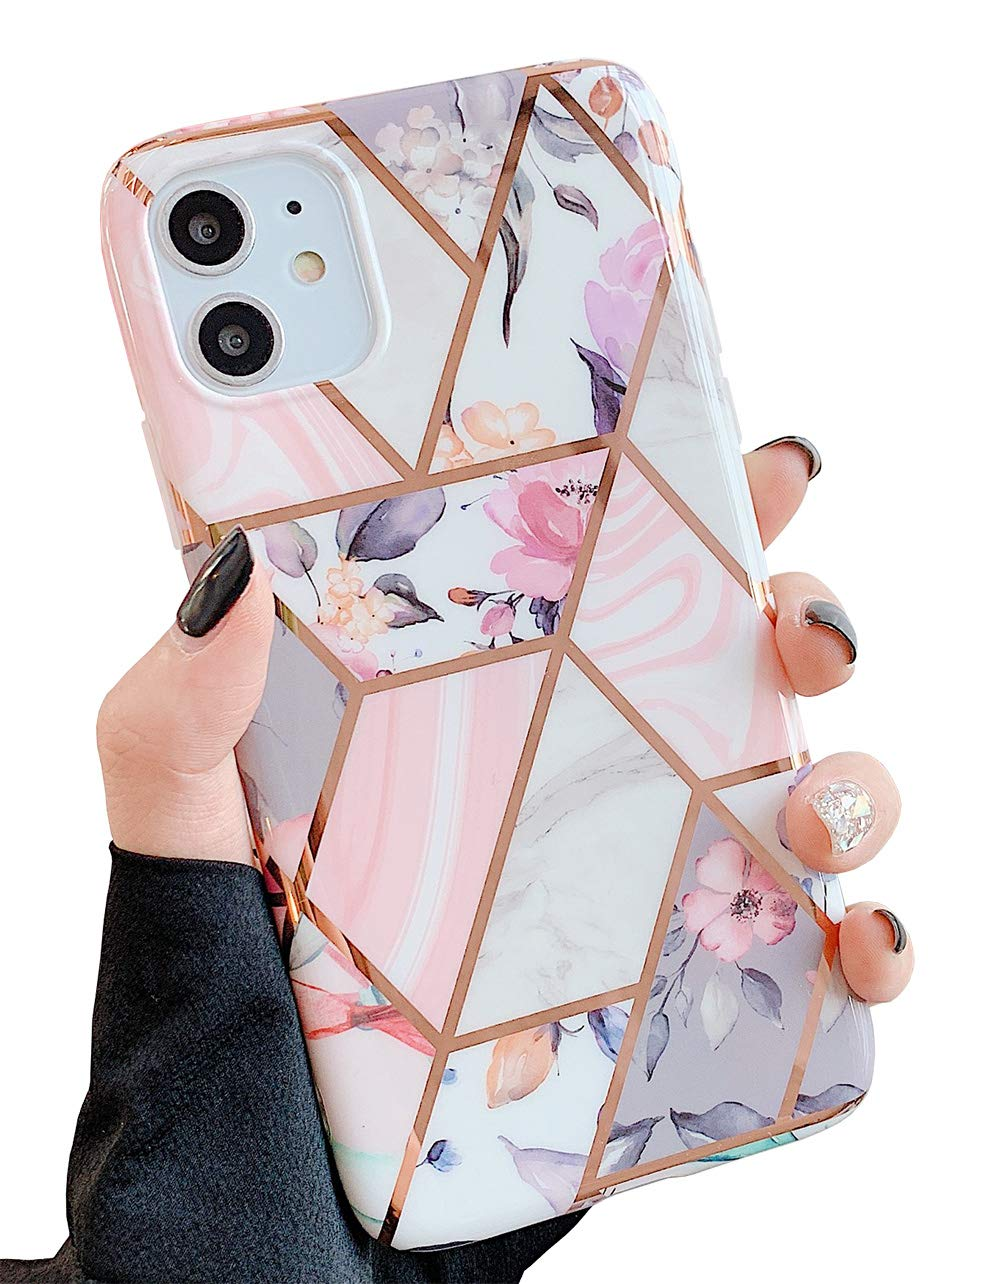 """KERZZIL iPhone 11 Flower Case for Girls and Women, Trendy Shiny Rose Gold Glossy Marble Design with Pink Floral and Purple Leaves, Protective Phone Case Compatible with iPhone 11 6.1"""" (Pink Flower)"""